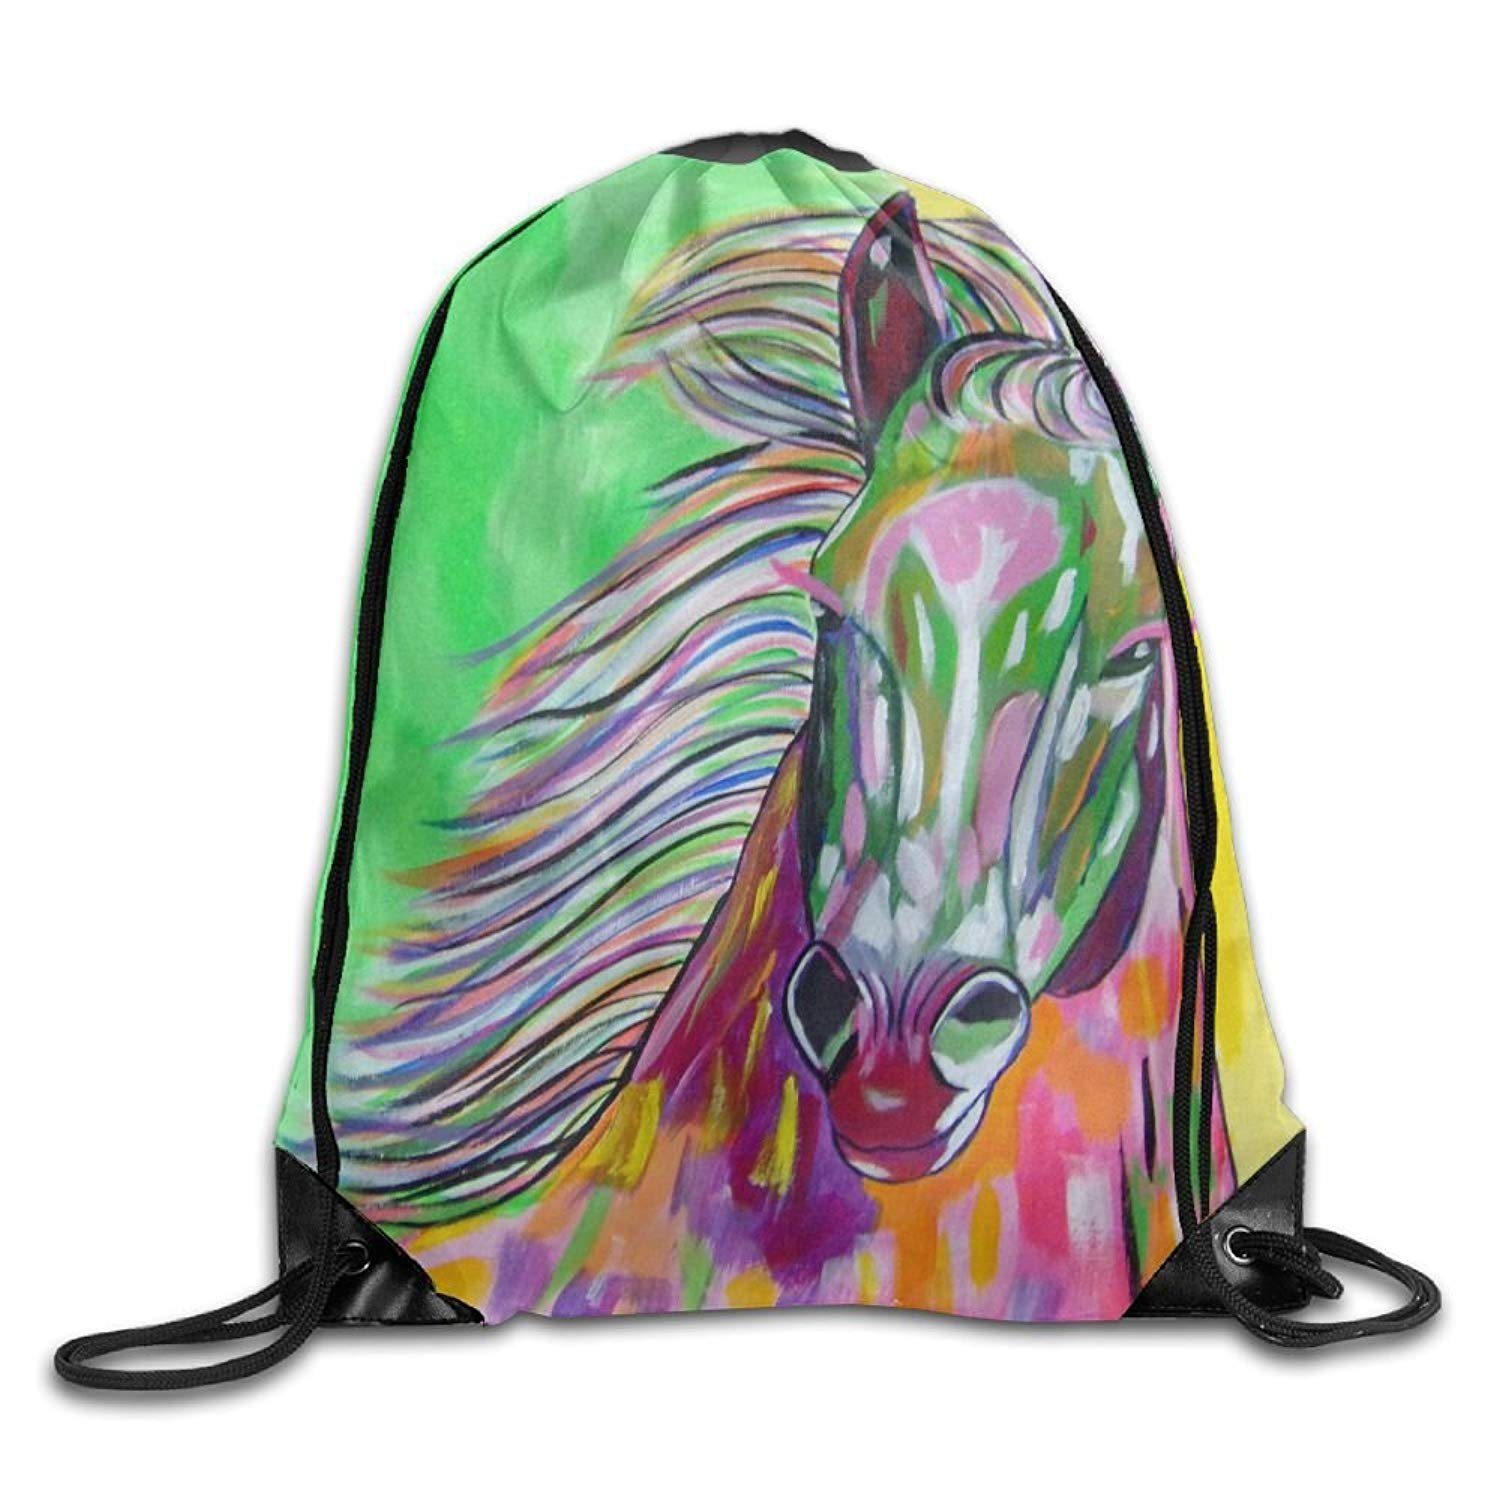 Gym Drawstring Bags Horse Oil Painting Draw Rope Shopping Travel Backpack Tote Student Camping